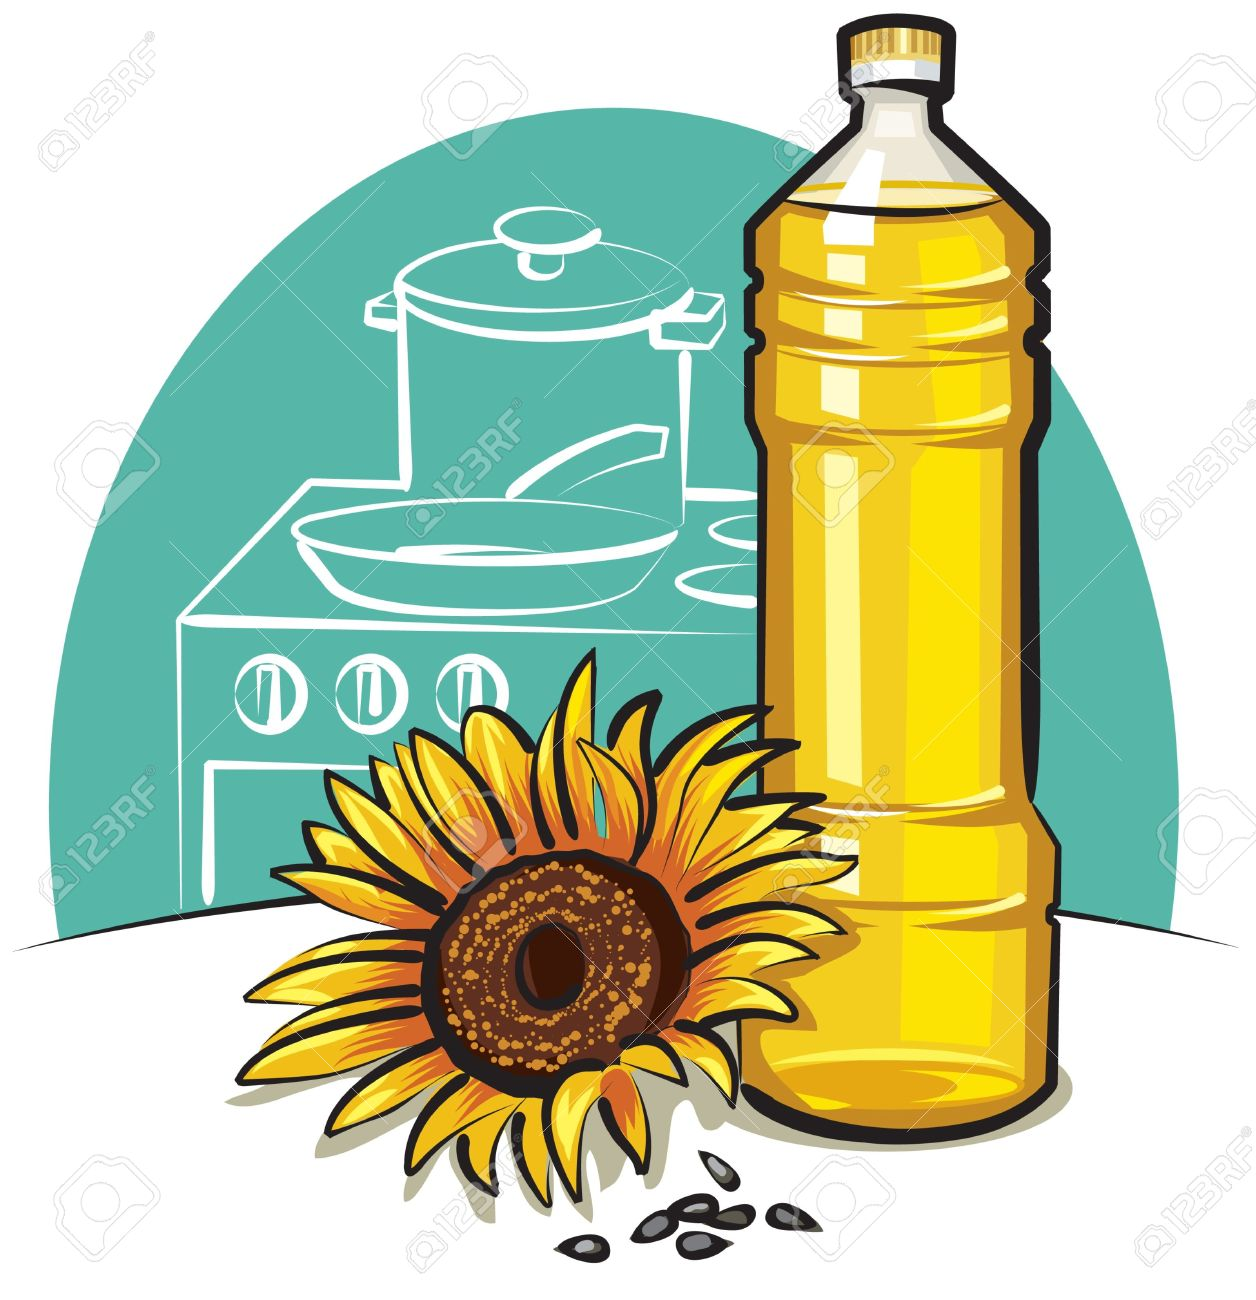 8,963 Vegetable Oil Cliparts, Stock Vector And Royalty Free.